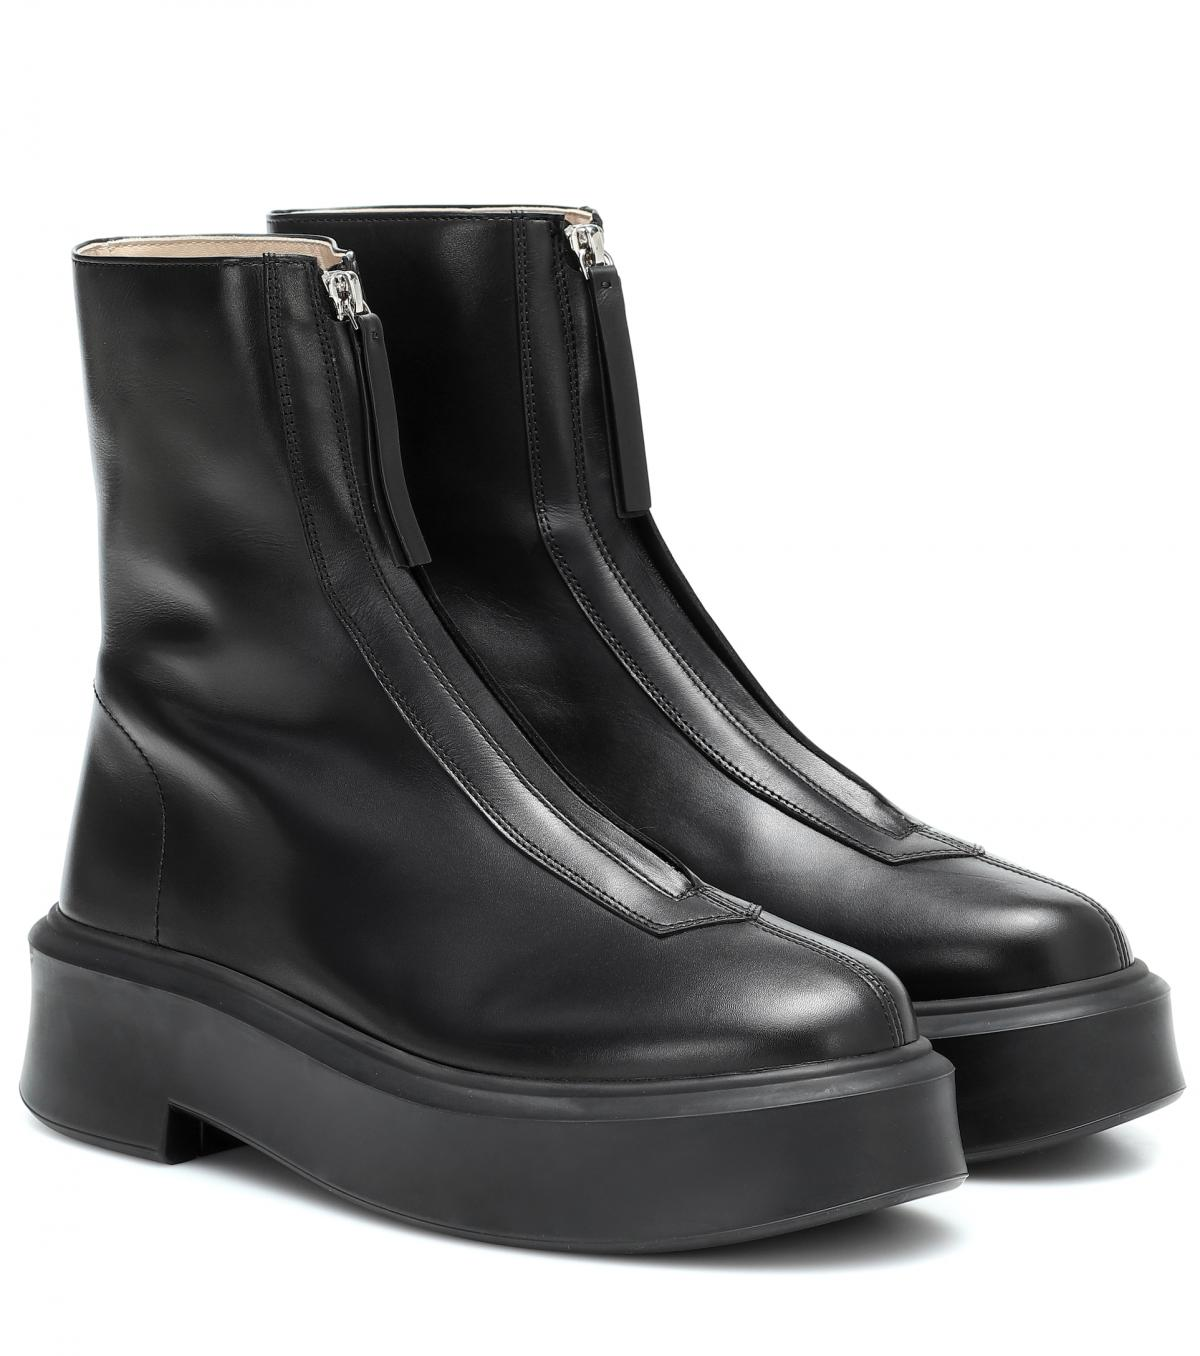 Zipped 1 leather ankle boots by The Row, available on mytheresa.com for $1290 Kourtney Kardashian Shoes Exact Product